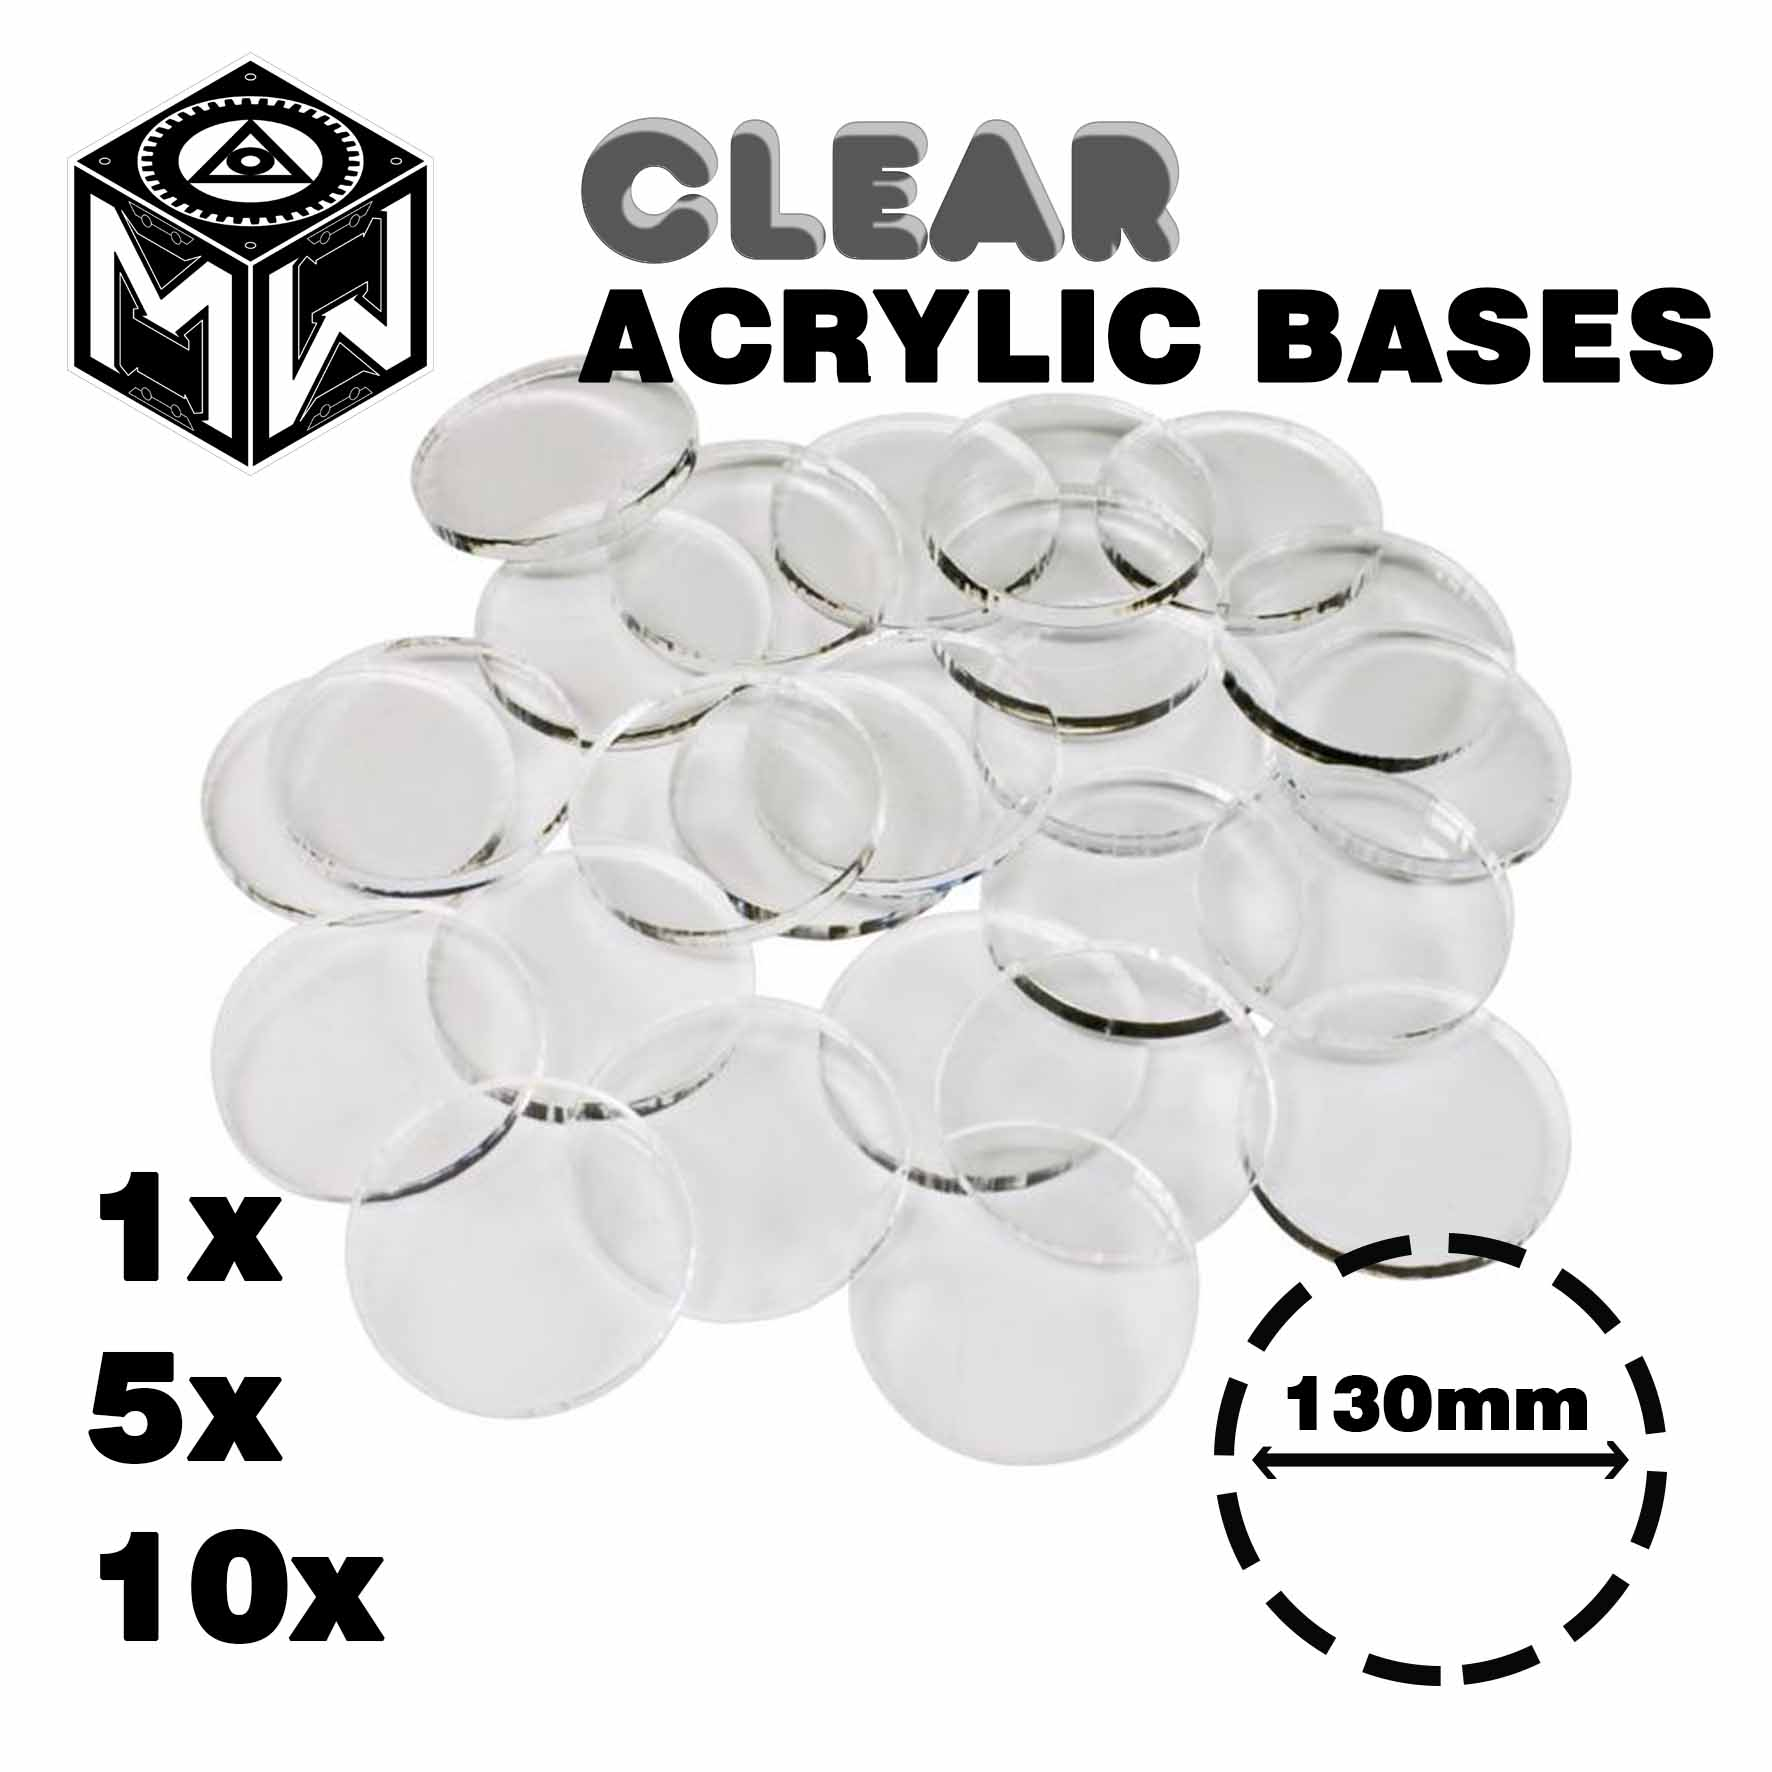 3mm Acrylic Clear Bases, Round 130mm